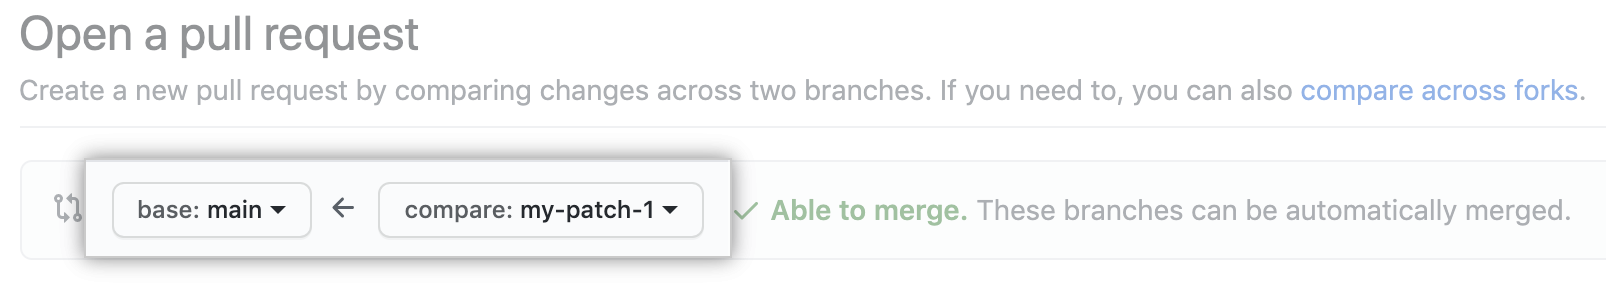 Drop-down menus for choosing the base and compare branches